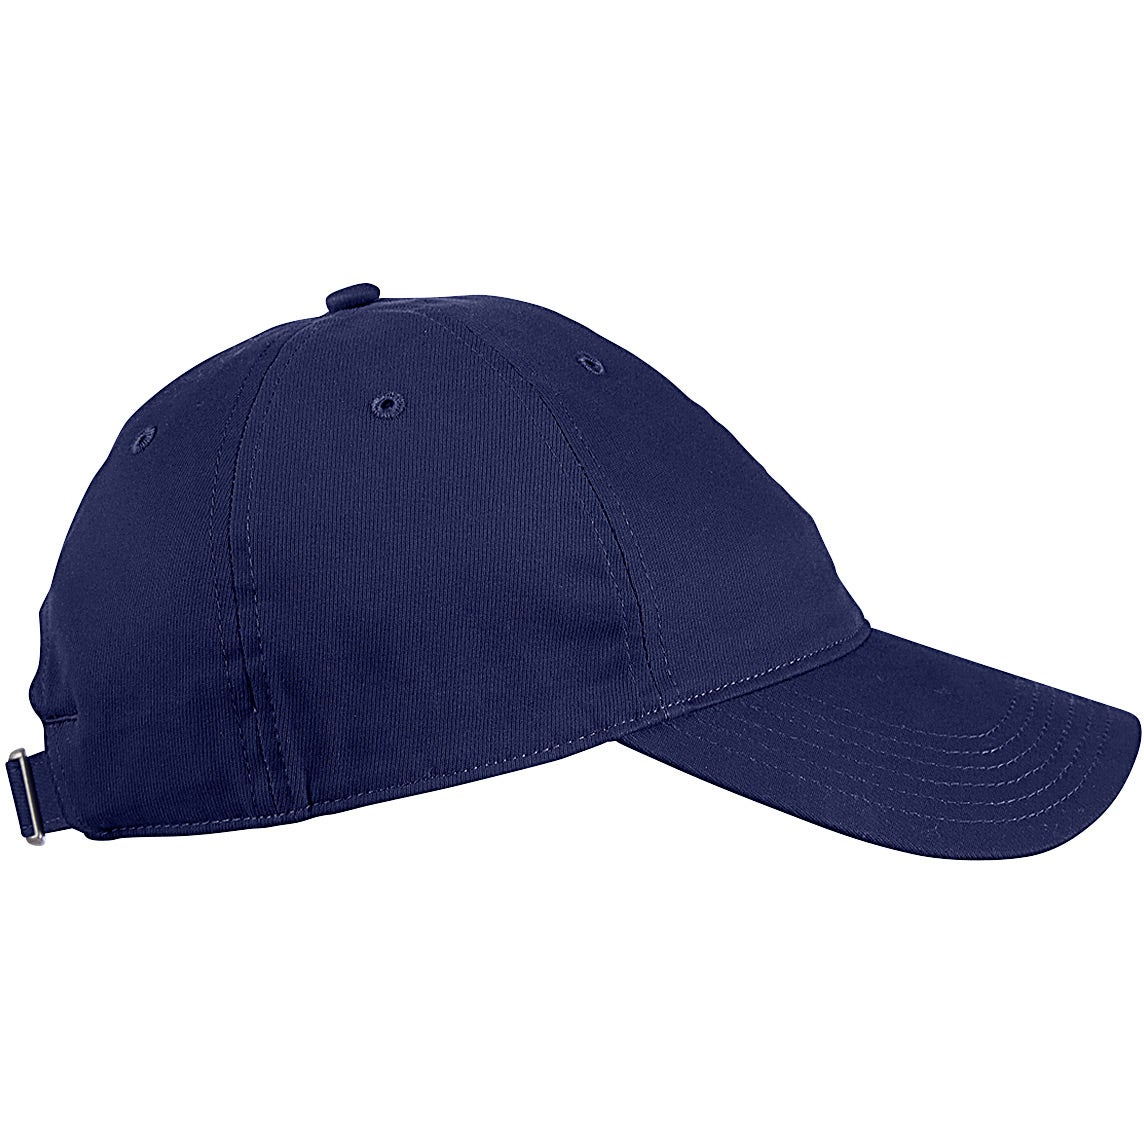 Under Armour Adjustable Chino Cap 327967cd7a2b